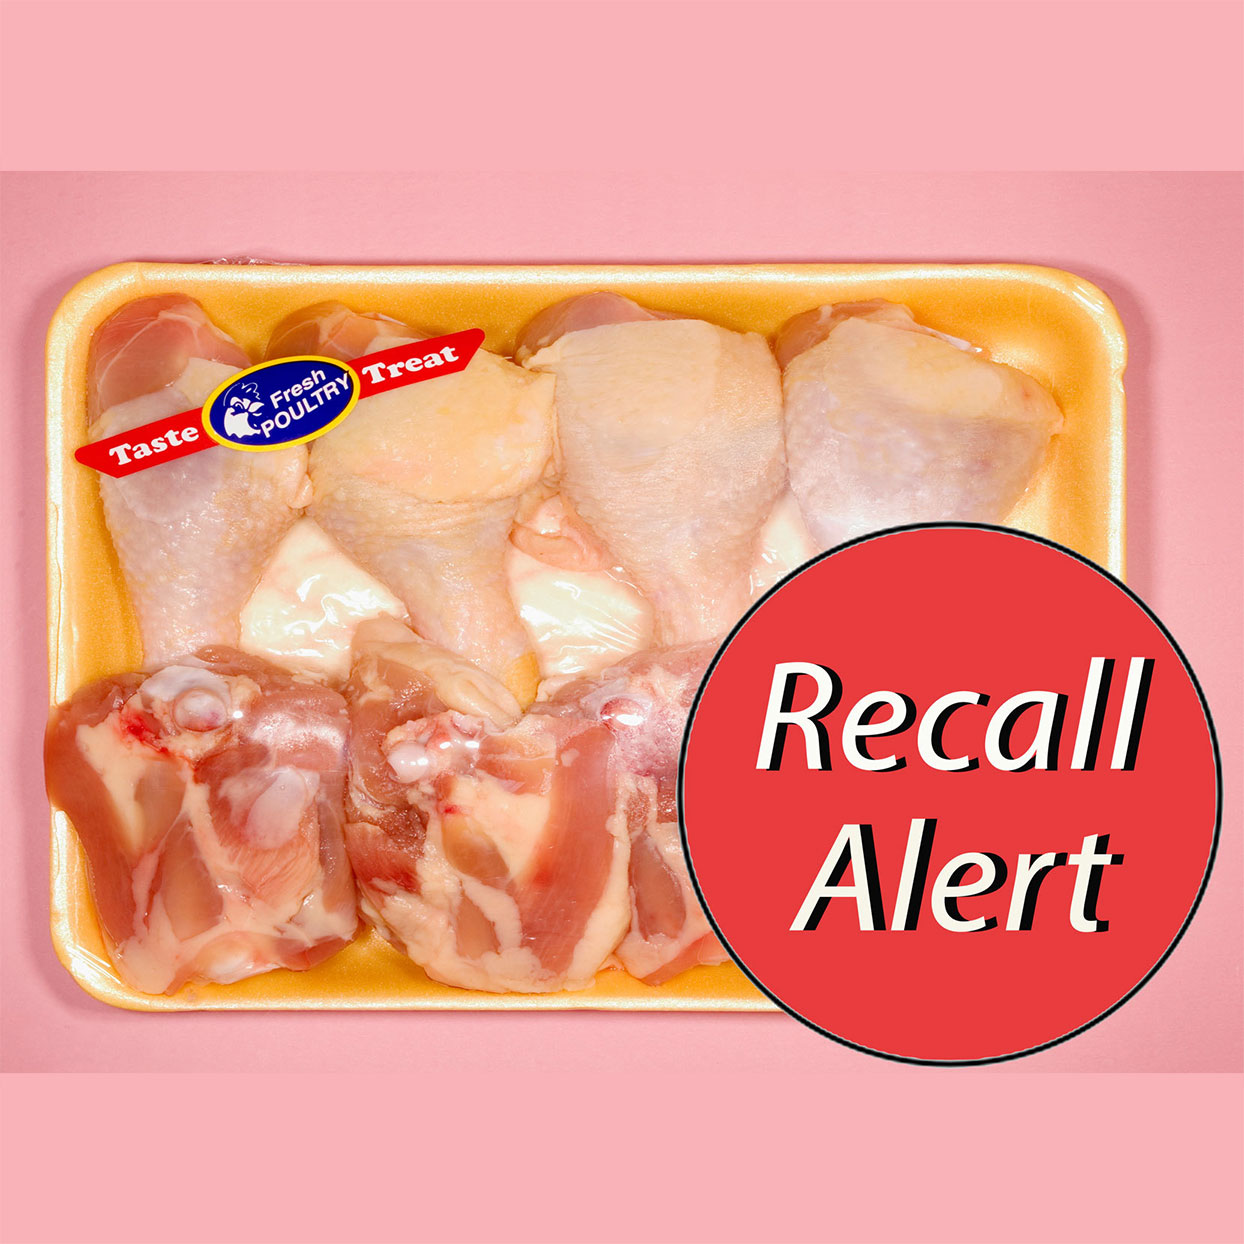 Chicken Products Recalled at Trader Joe's Aldi, Target and More for Possible Listeria Contamination